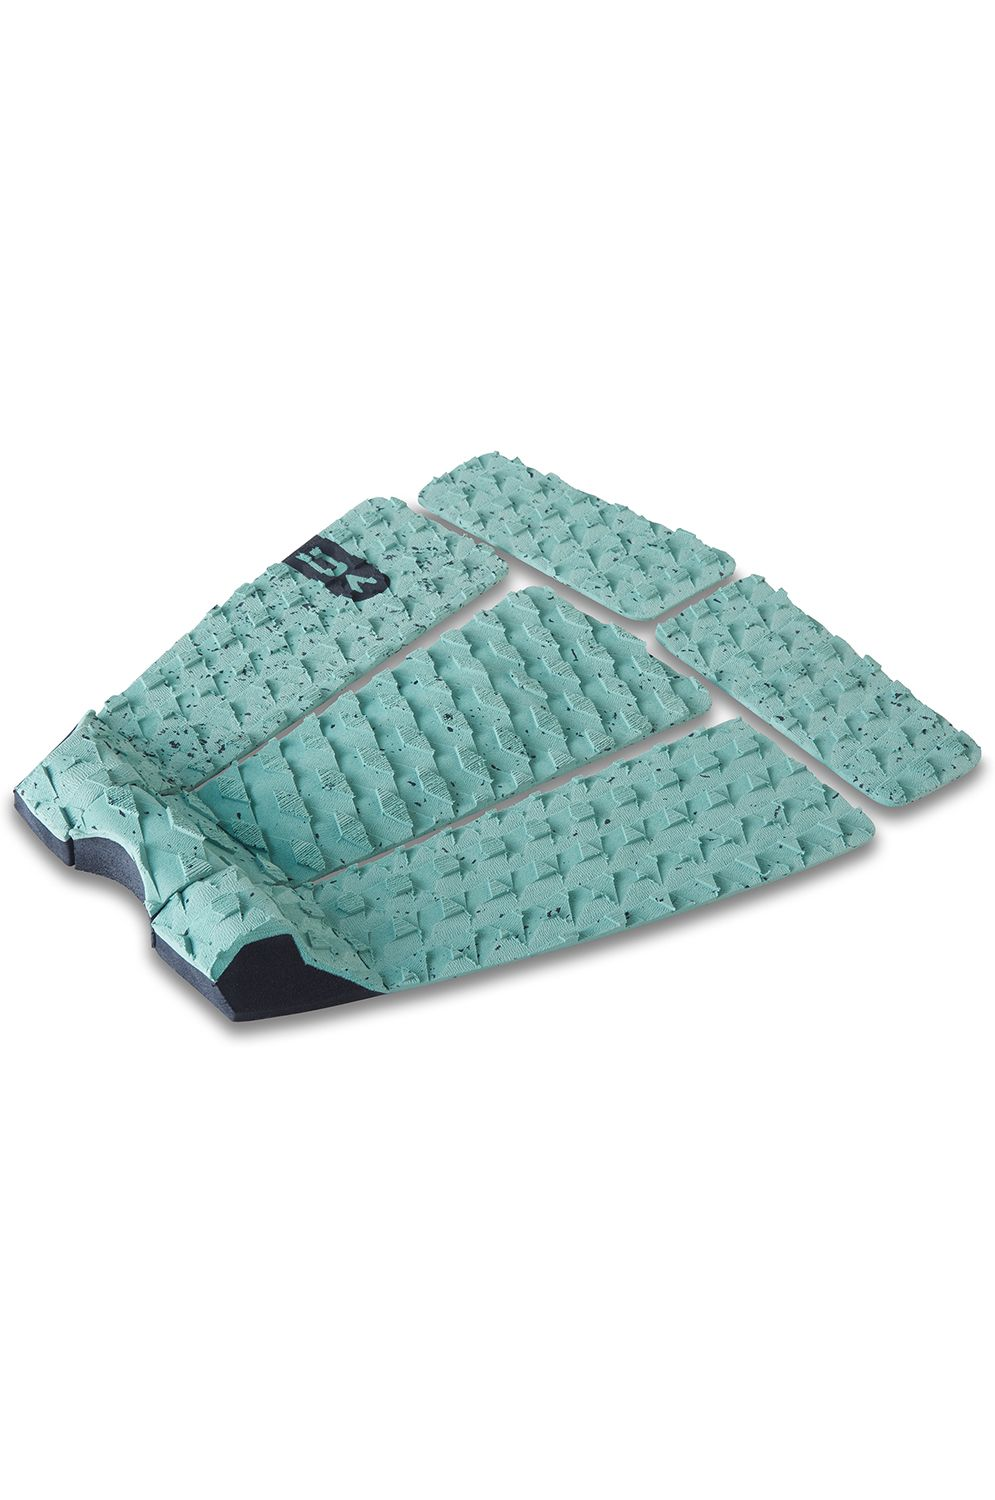 Deck Dakine BRUCE IRONS PRO SURF TRACTION PAD Nile Blue